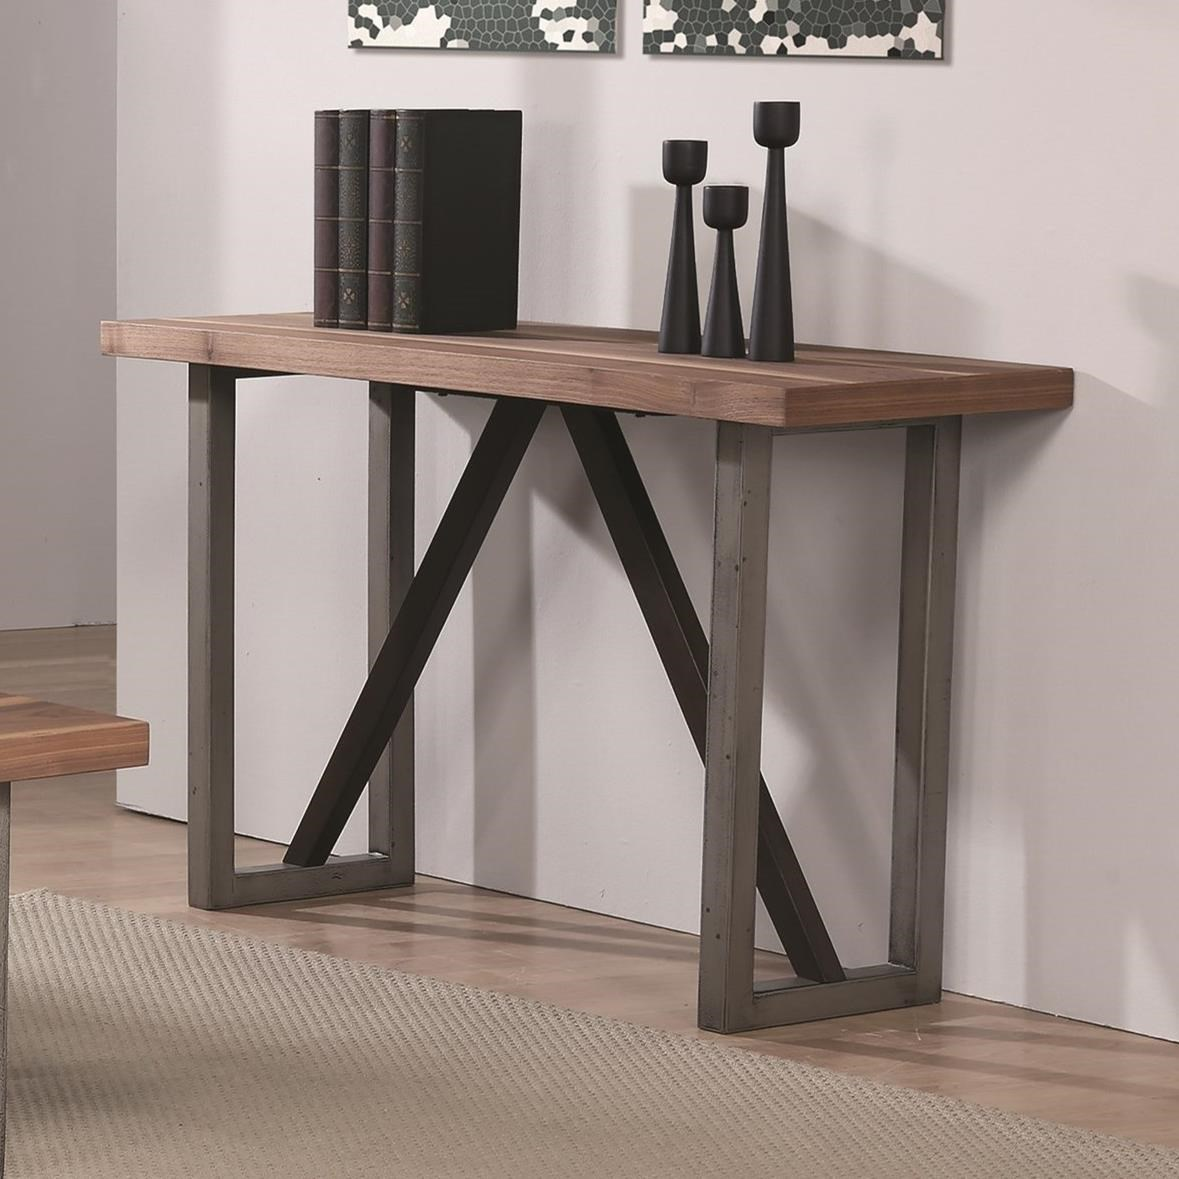 705649 industrial sofa table